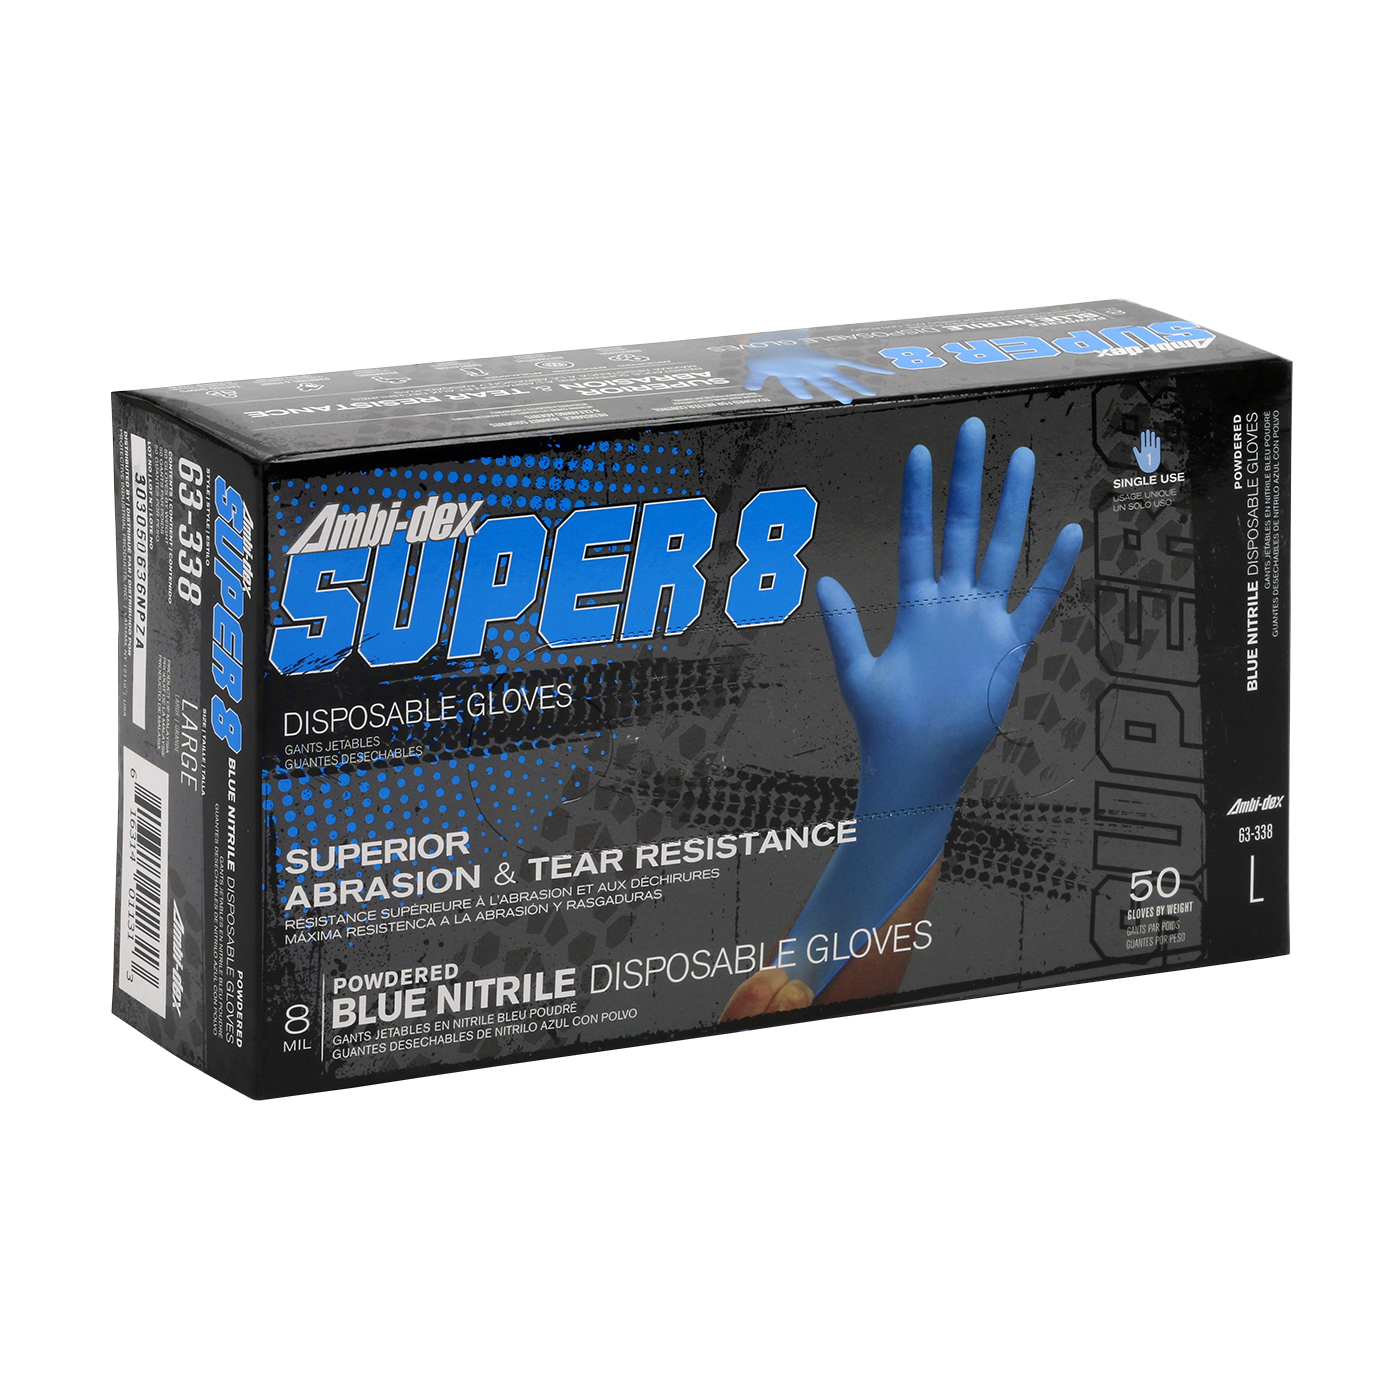 #63-338 PIP 8-Mil Ambi-dex® Super 8 Industrial Disposable Powdered Nitrile Gloves